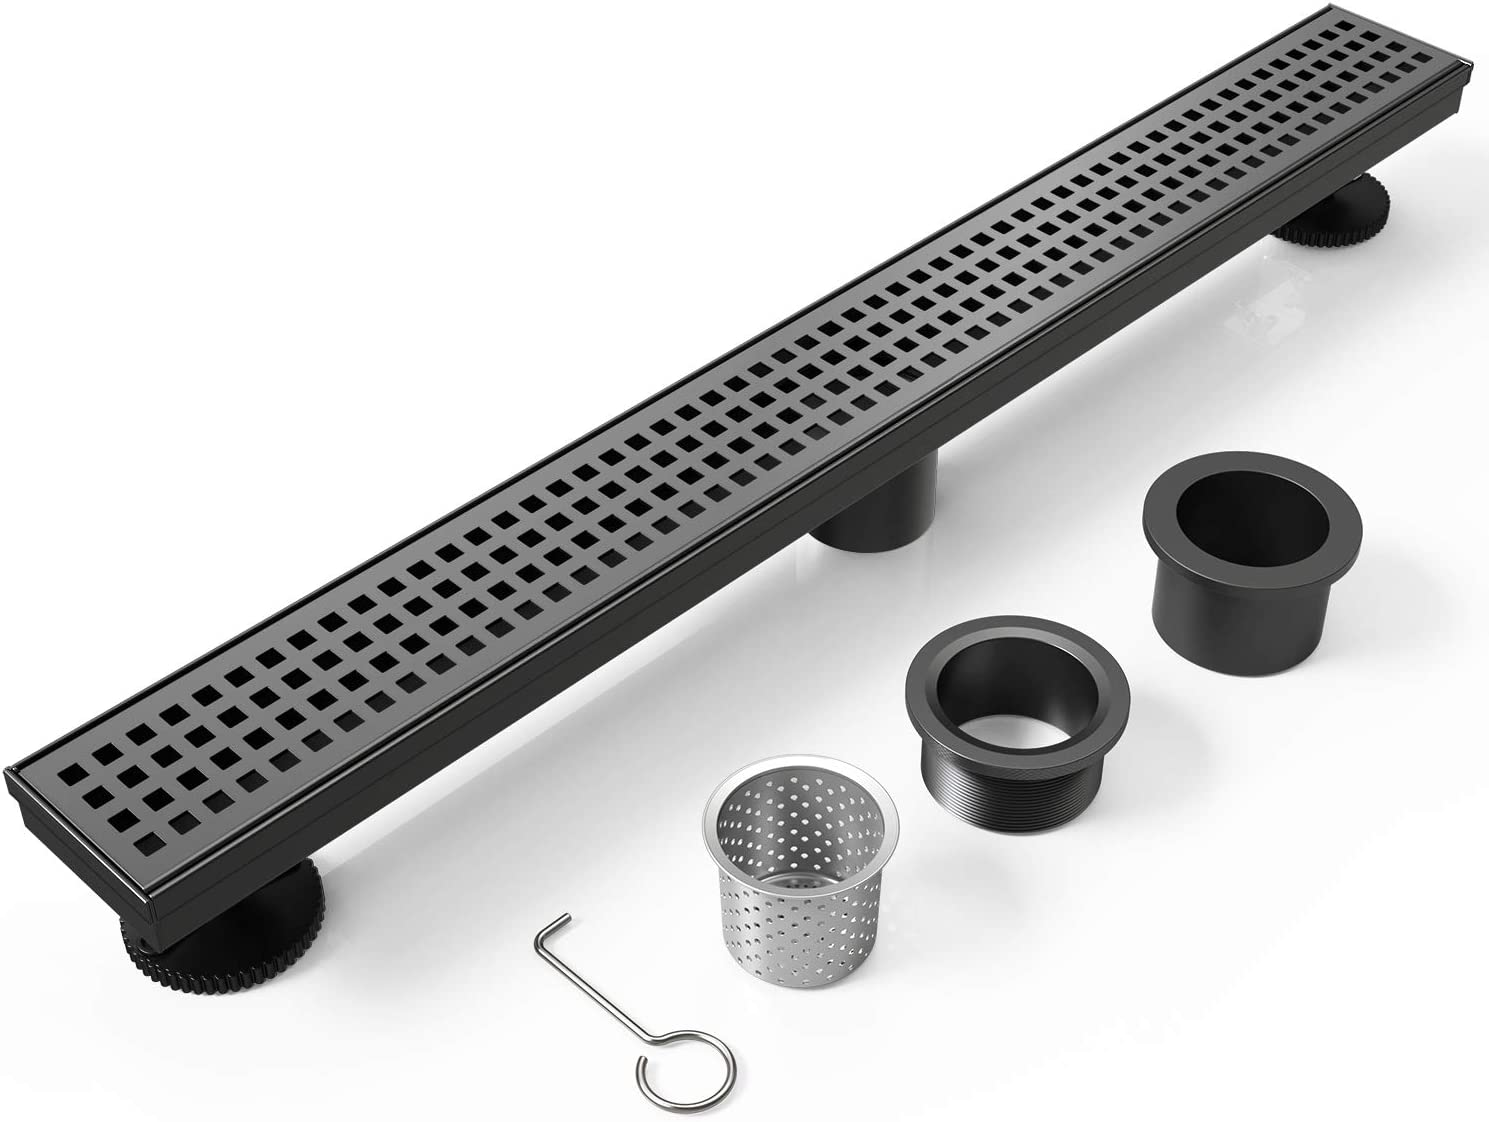 WEBANG 24 Inch Rectangular Linear Shower Floor Drain With Accessories,Quadrato Pattern Grate Removable,Food-grade SUS 304 Stainless Steel,WATERMARK&CUPC Certified,Matte Black